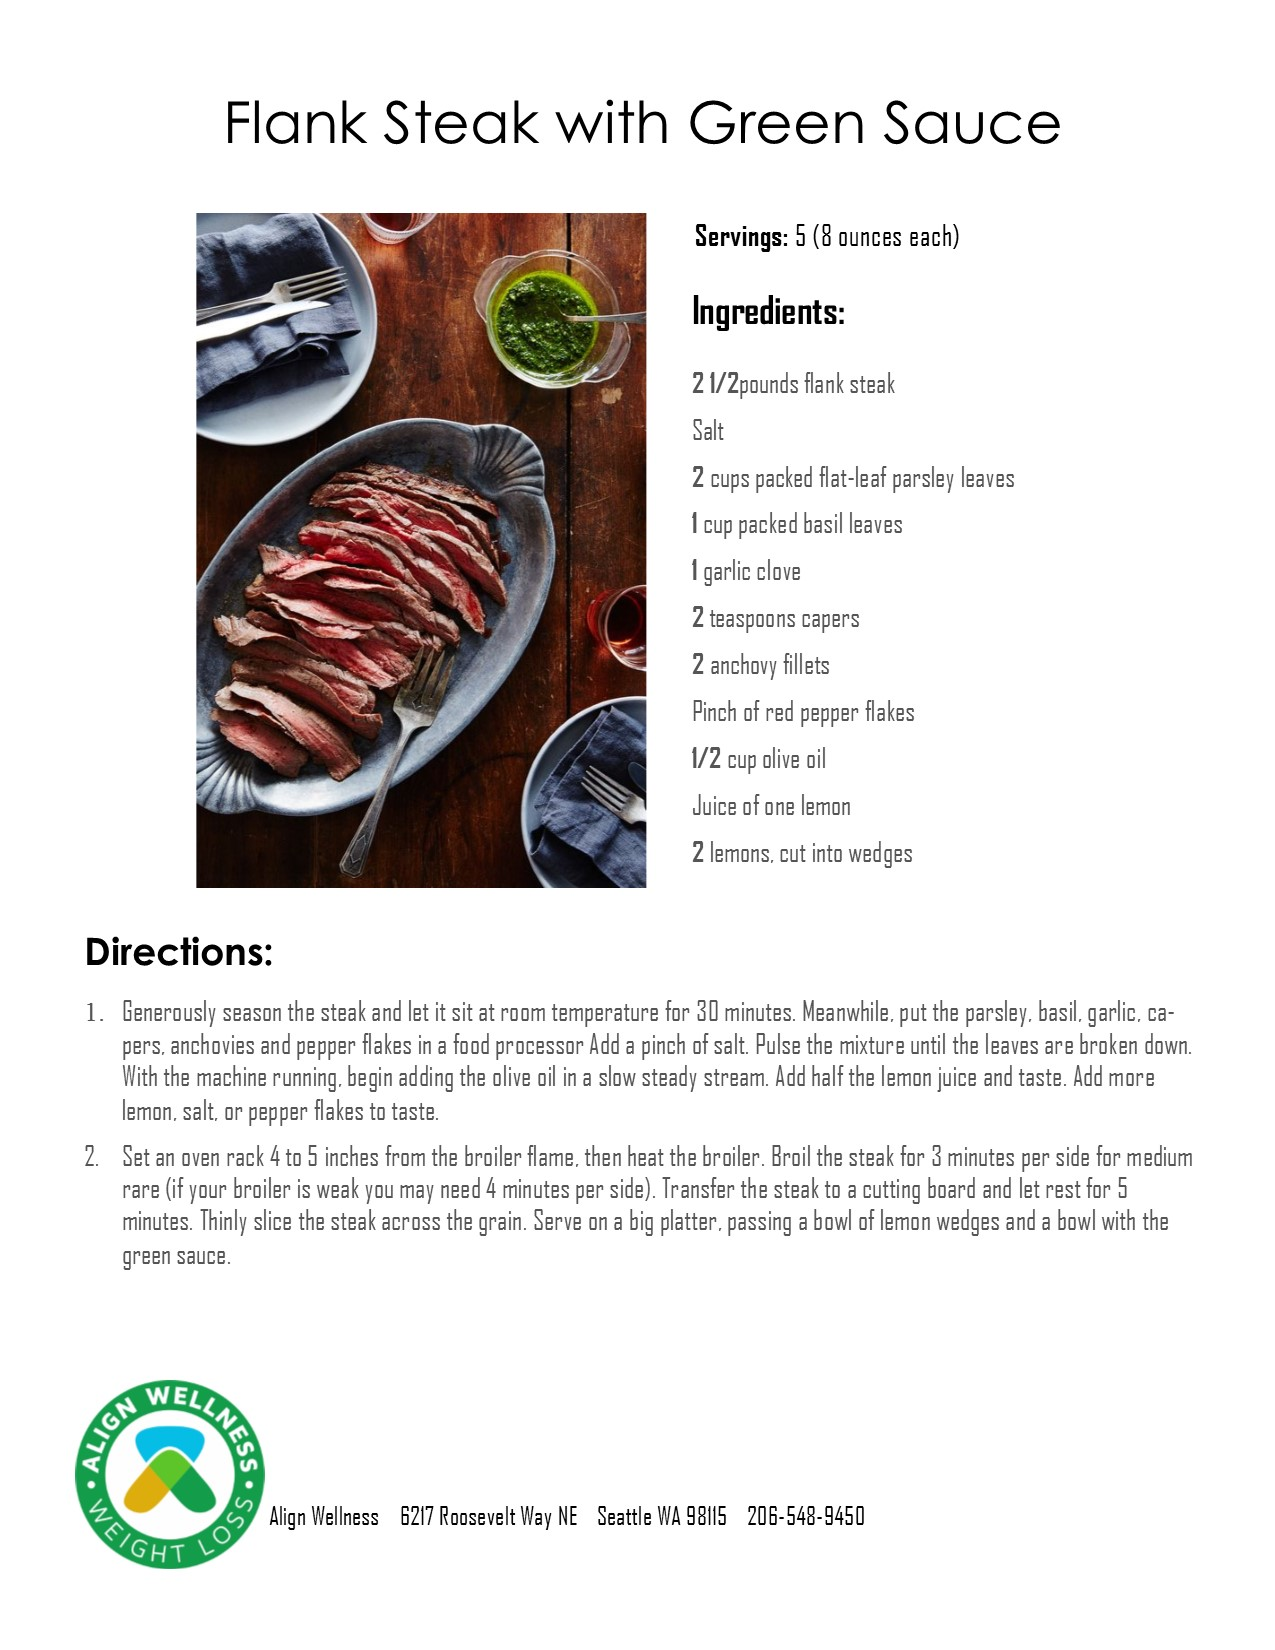 Flank Steak with Green Sauce Ideal Protein Recipe